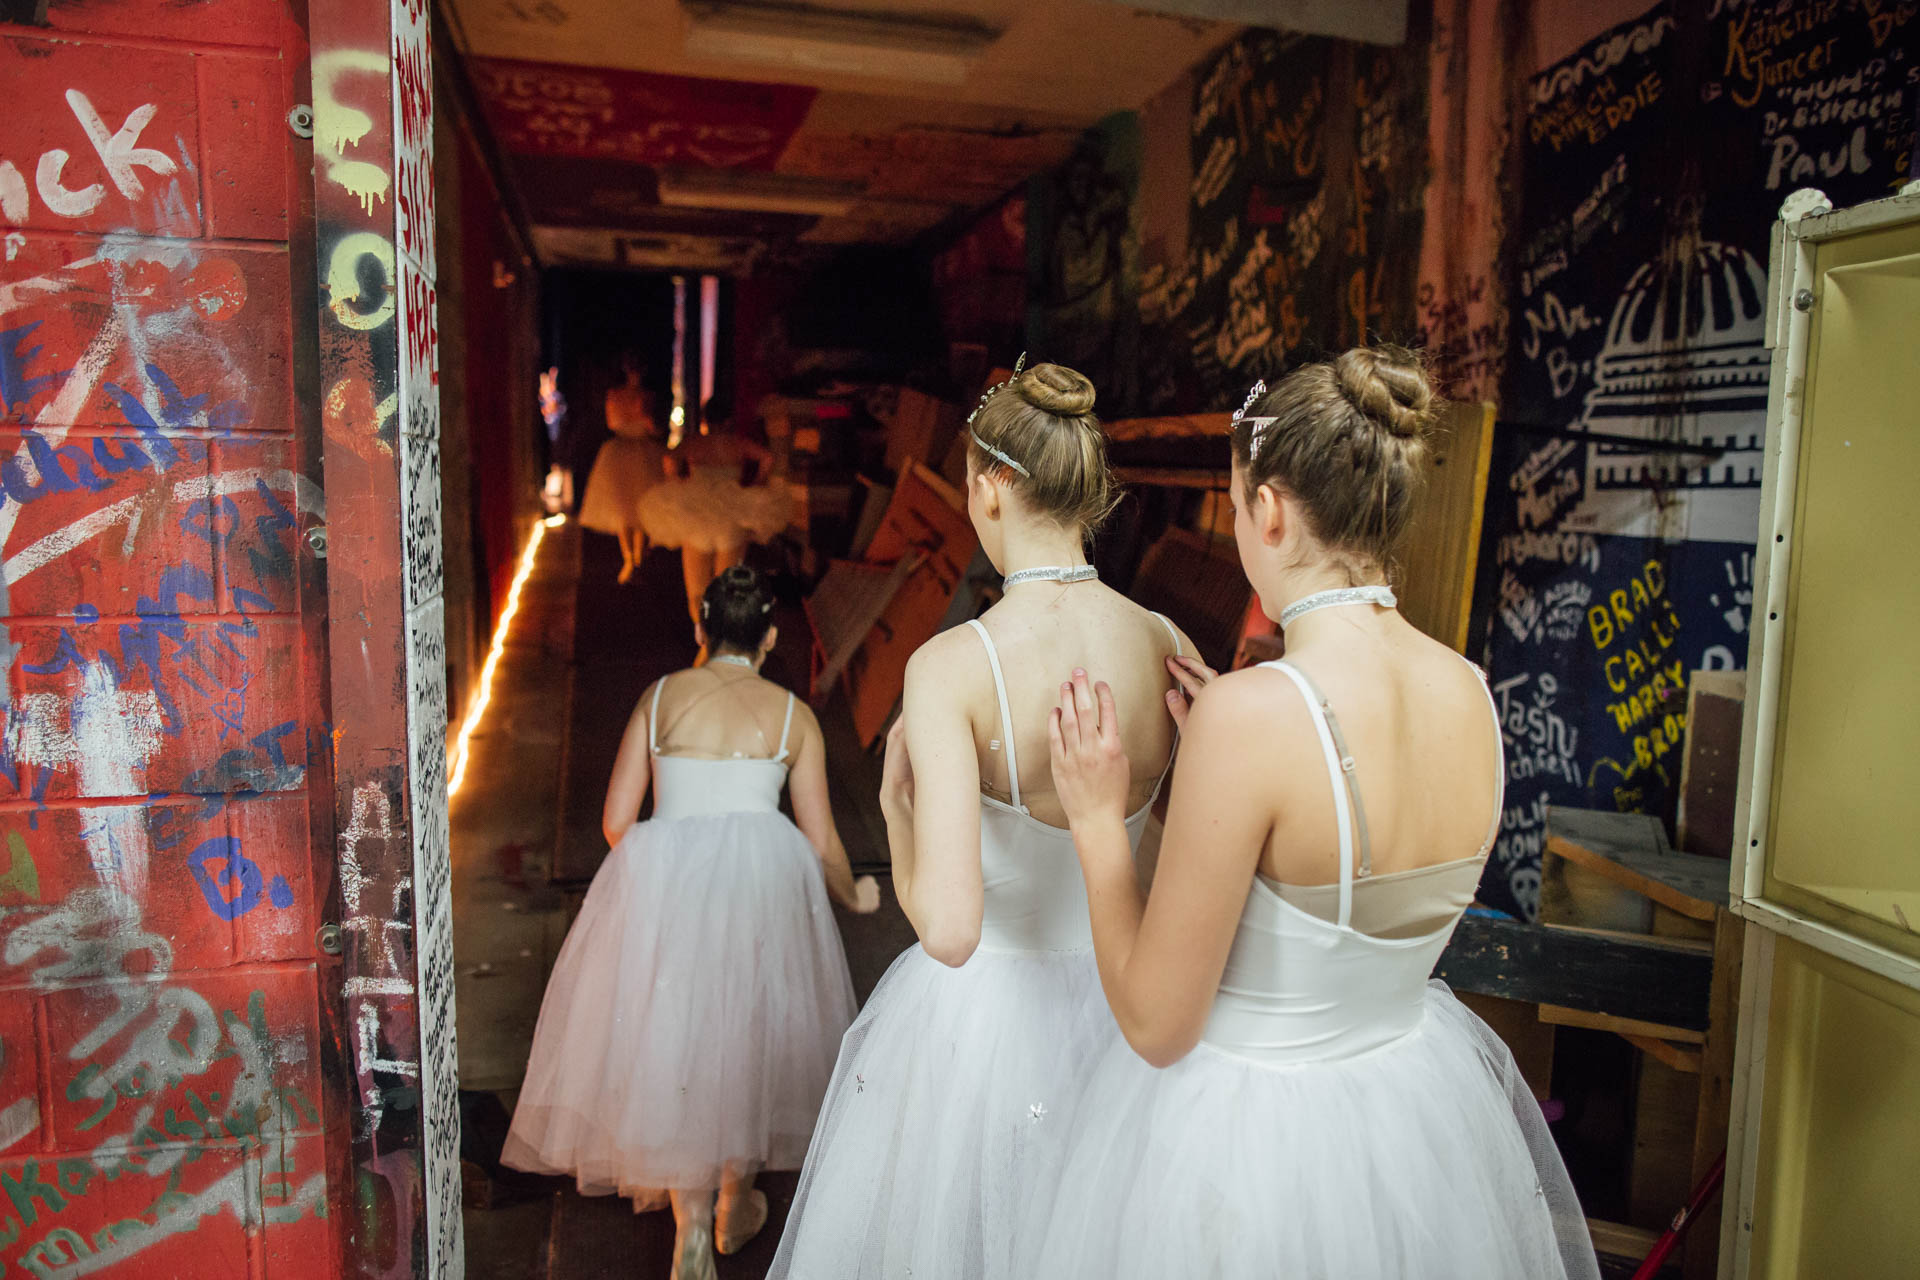 nutcracker-ballet-snow-flakes-rush-backstage-5670